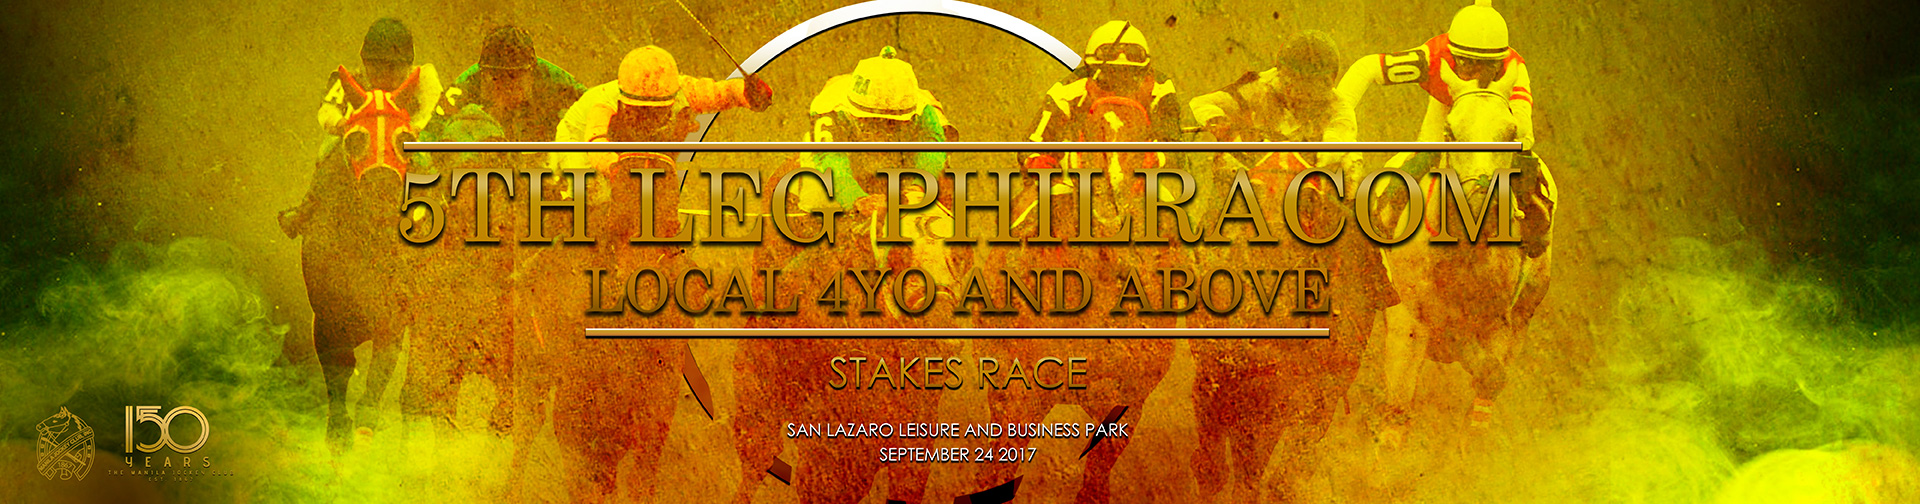 5th Leg Philracom Local 4YO & Above Stakes Race